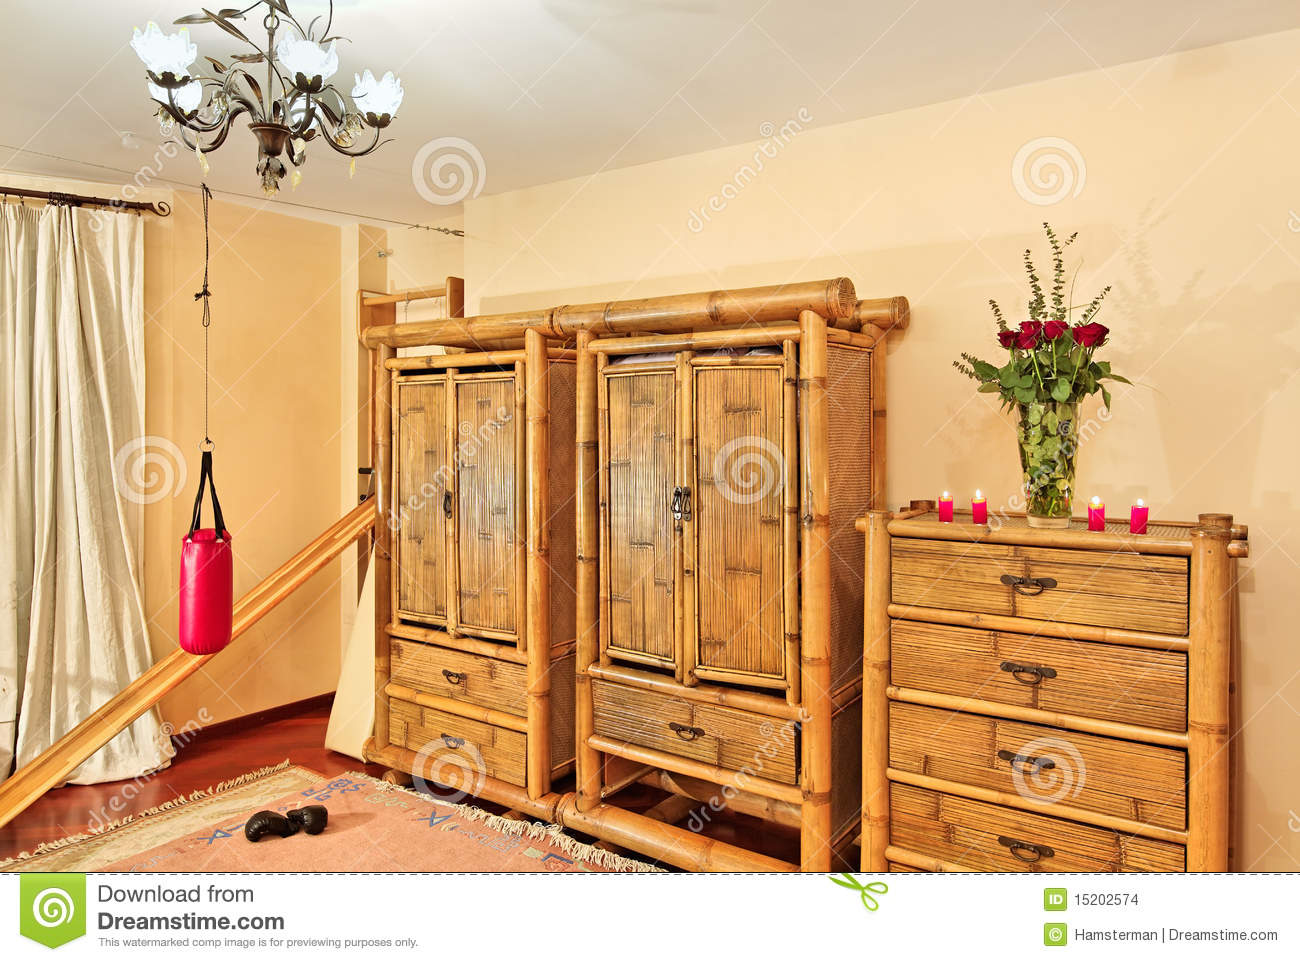 meubles en bambou ethniques images stock image 15202574. Black Bedroom Furniture Sets. Home Design Ideas